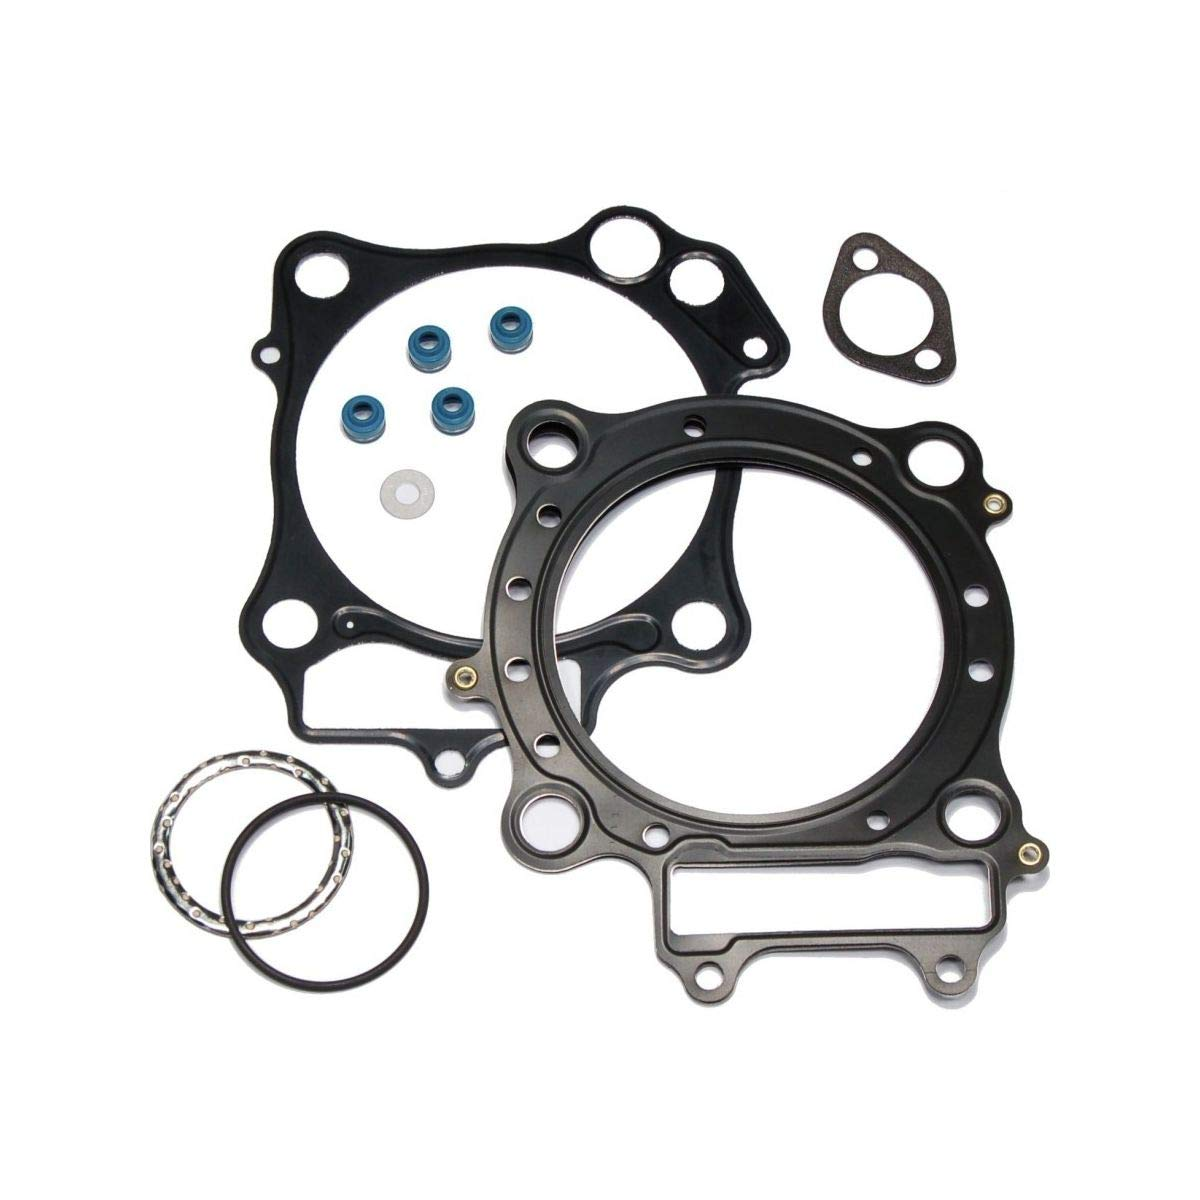 Cometic Top End Gasket Kit for 06-09 Suzuki LTR450